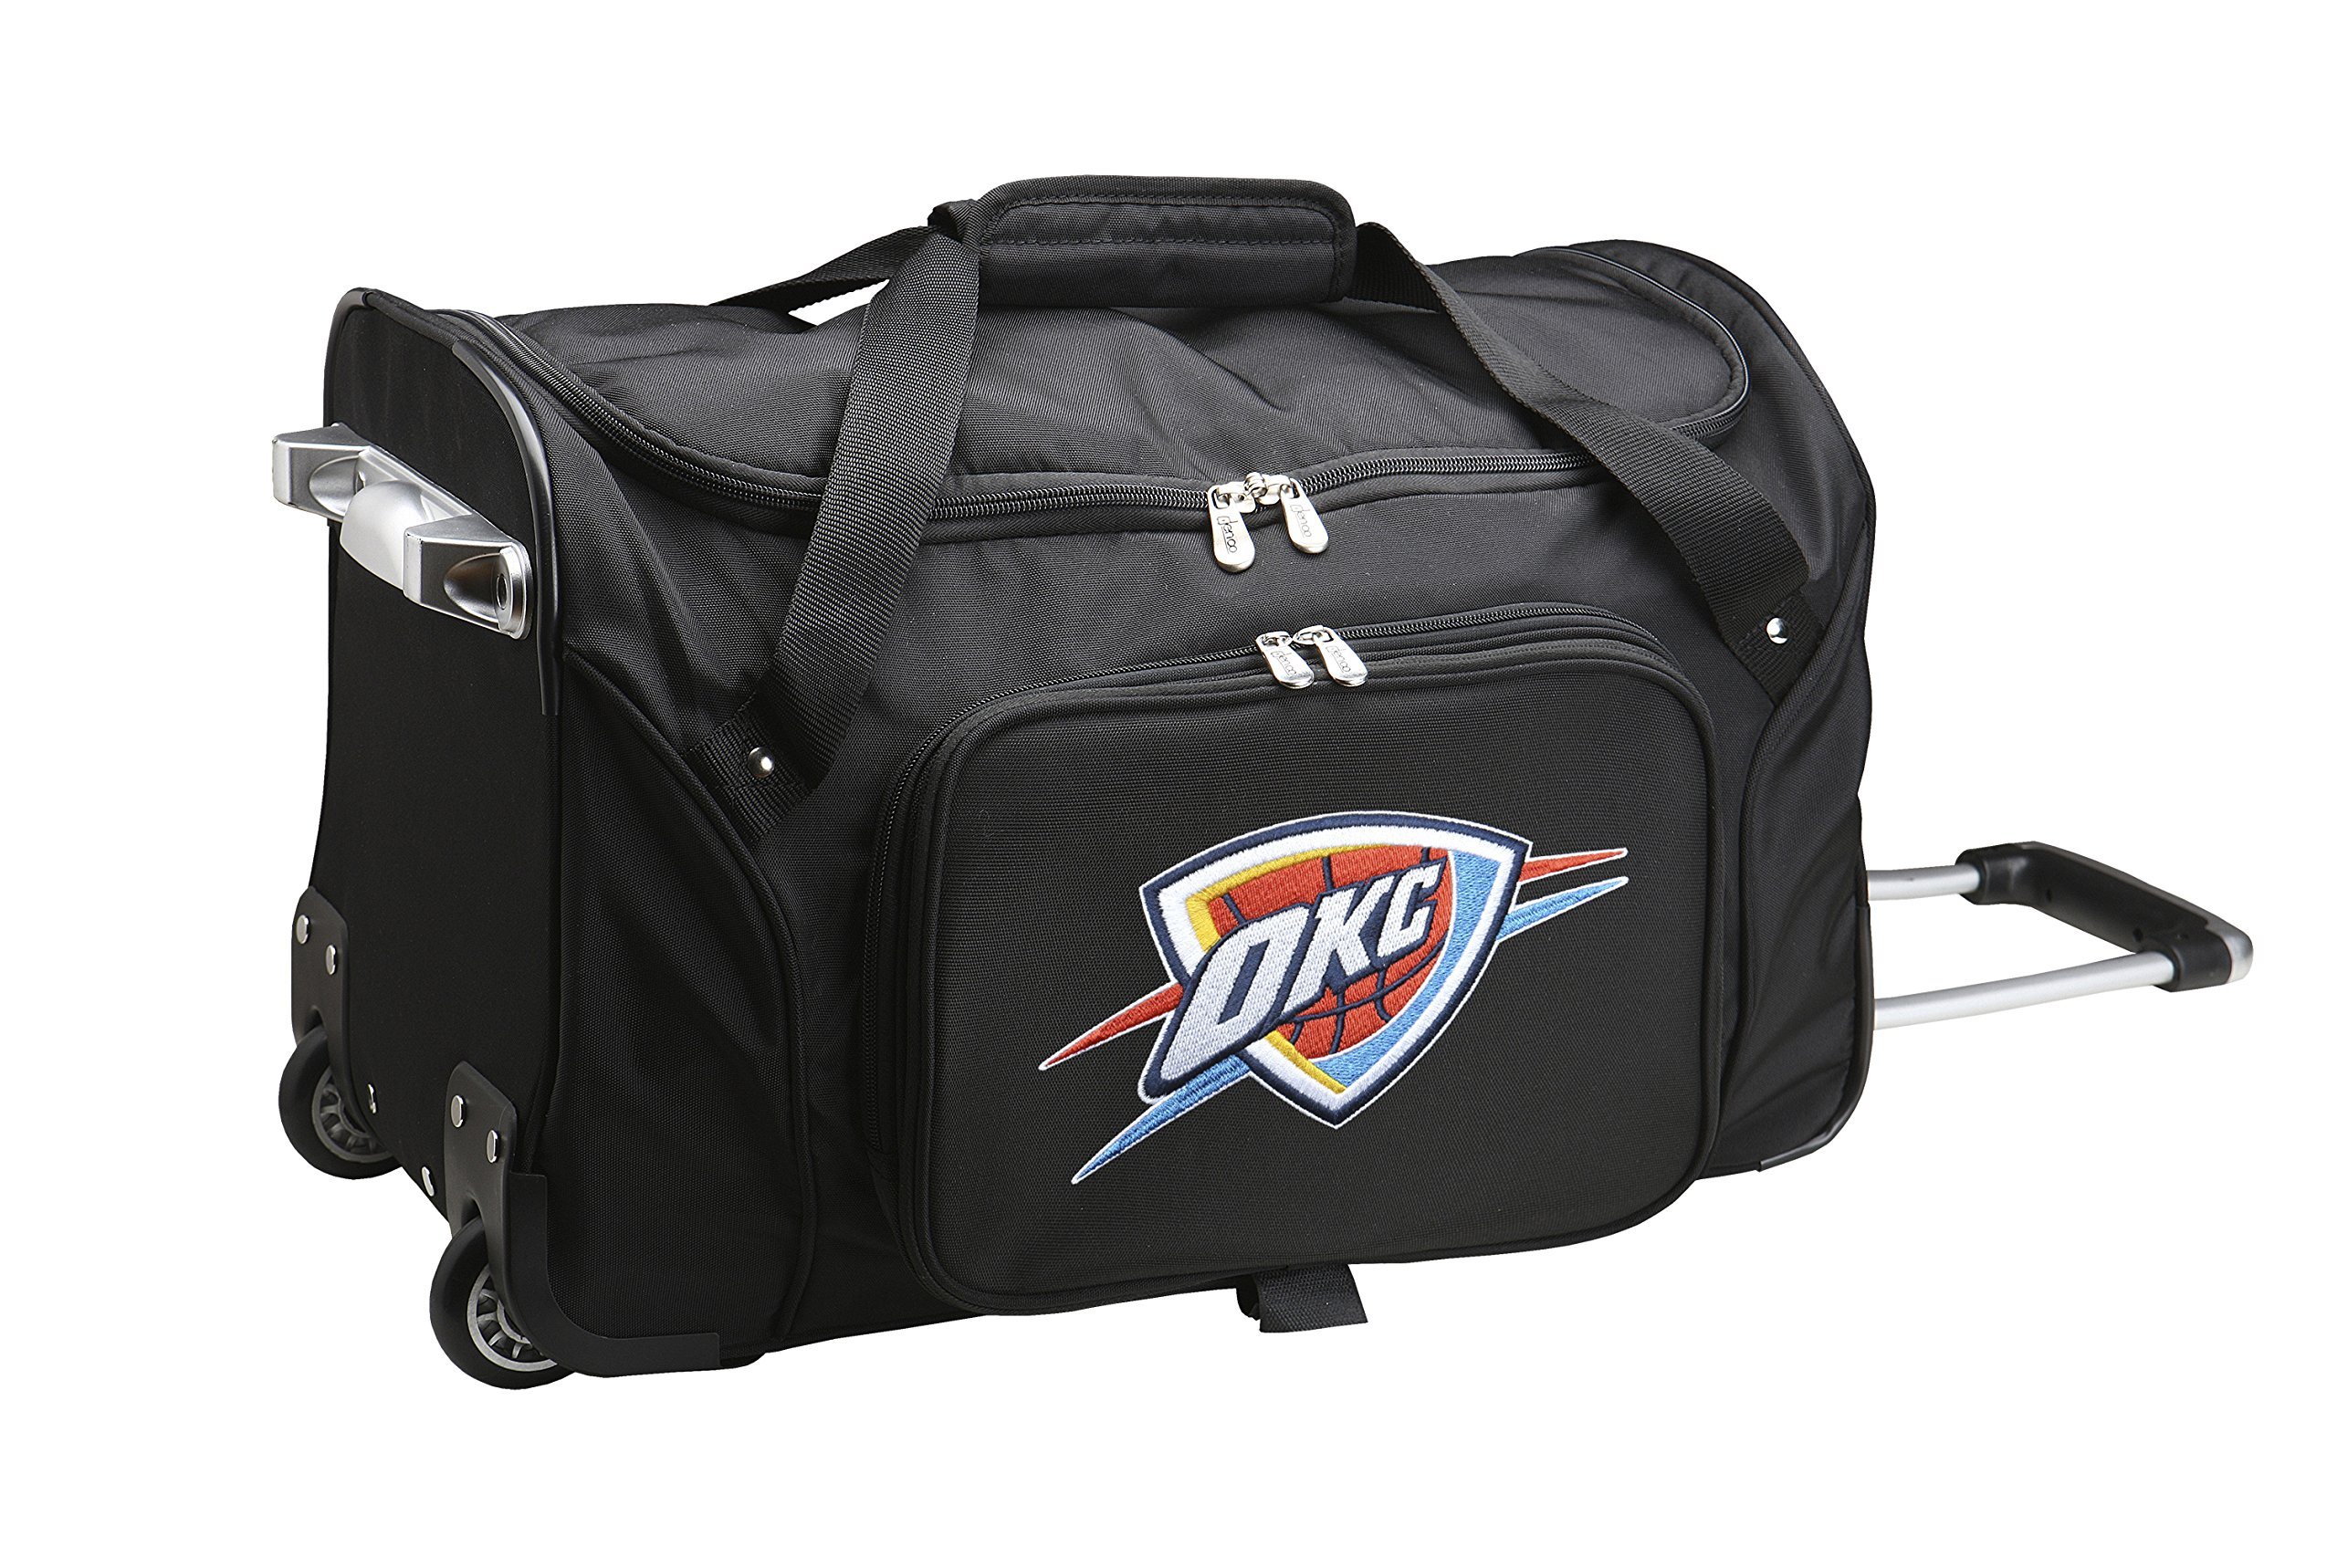 NBA Oklahoma City Thunder Wheeled Duffle Bag, 22 x 12 x 5.5'', Black